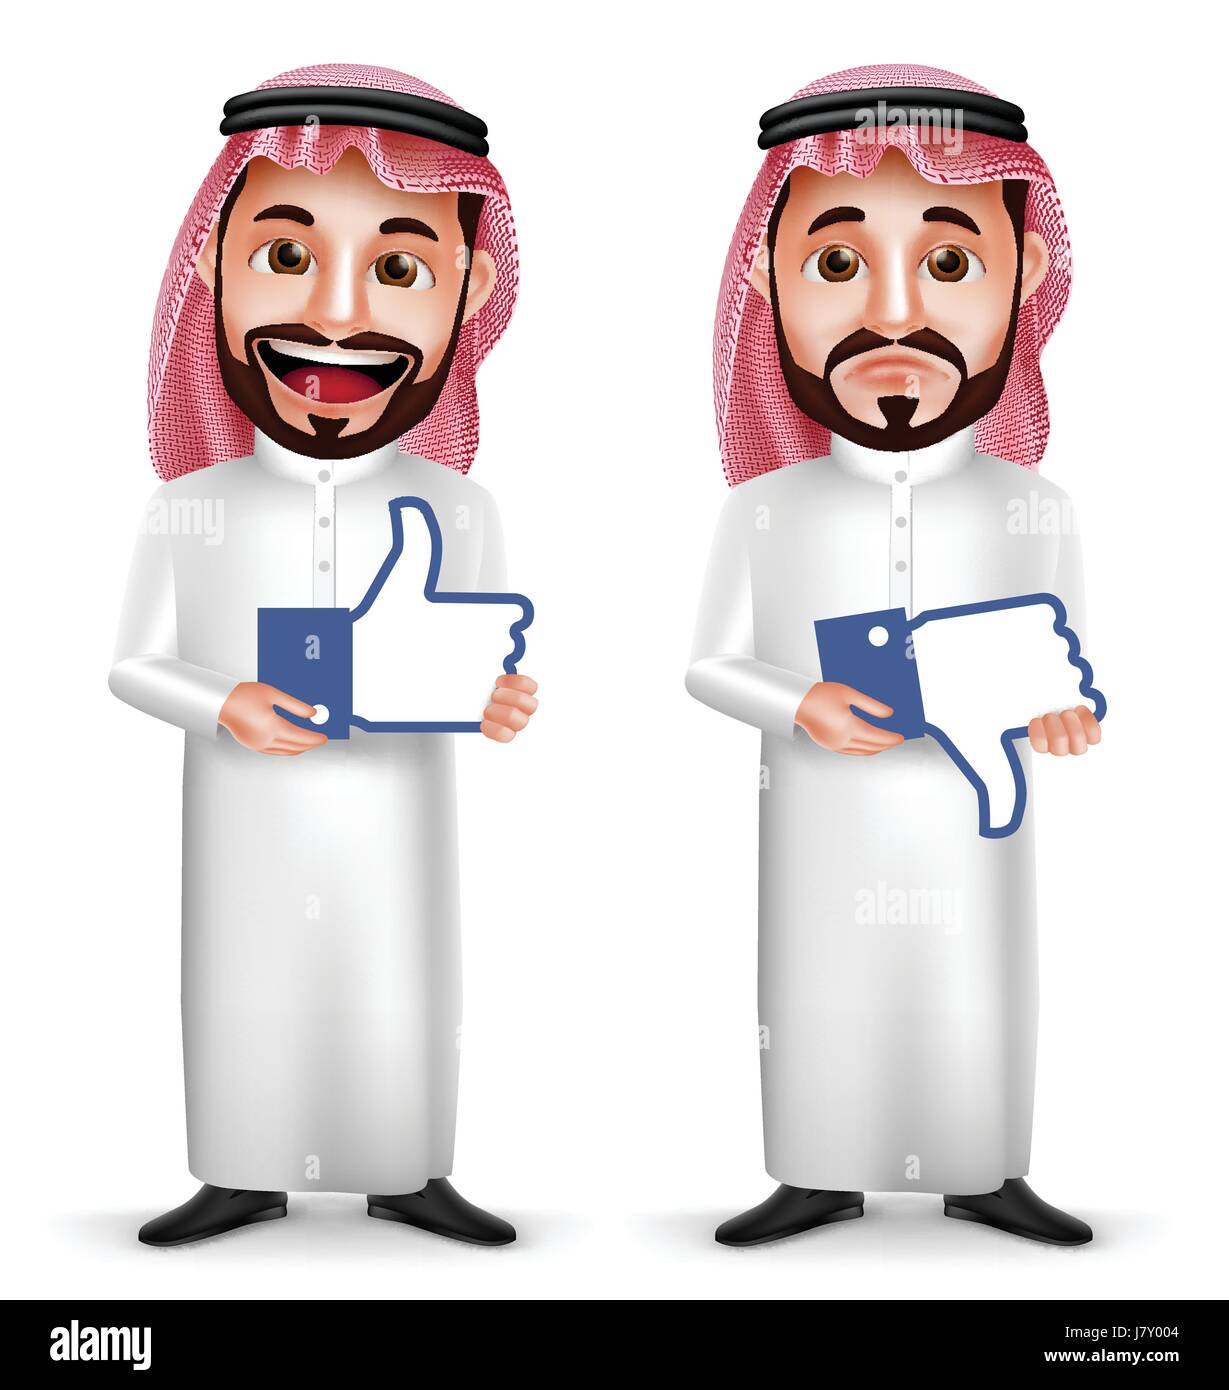 Saudi Arab man vector character with facial expressions holding like and dislike sign icon for social media isolated - Stock Image